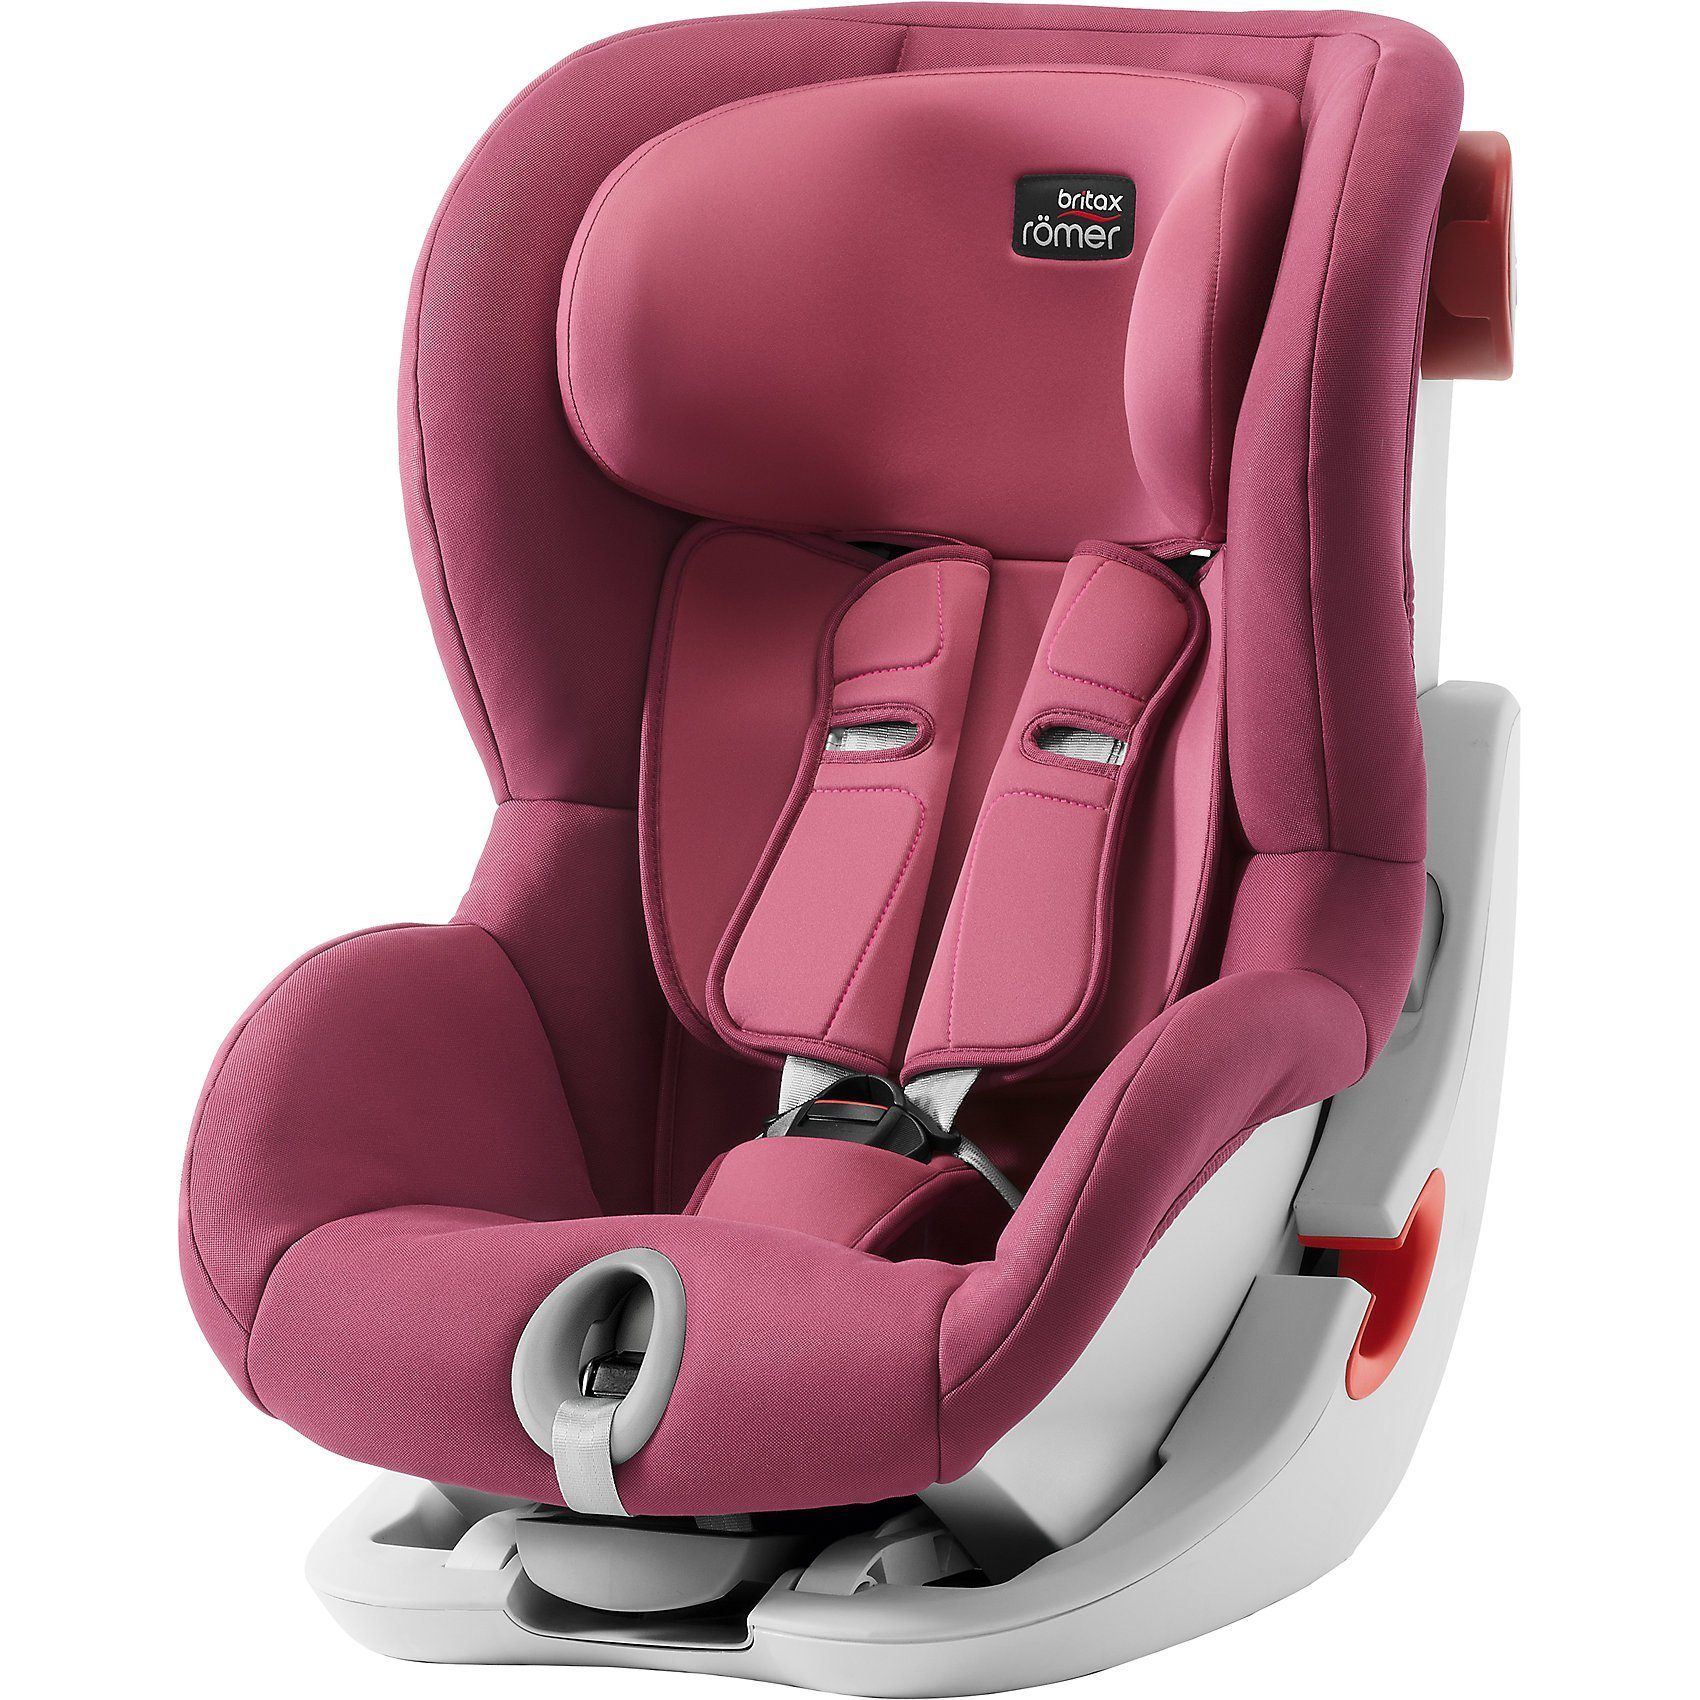 Maxi-cosi Auto-kindersitz Rubi Xp Poppy Red 2018 Britax RÖmer Auto Kindersitz King Ii Wine Rose Otto